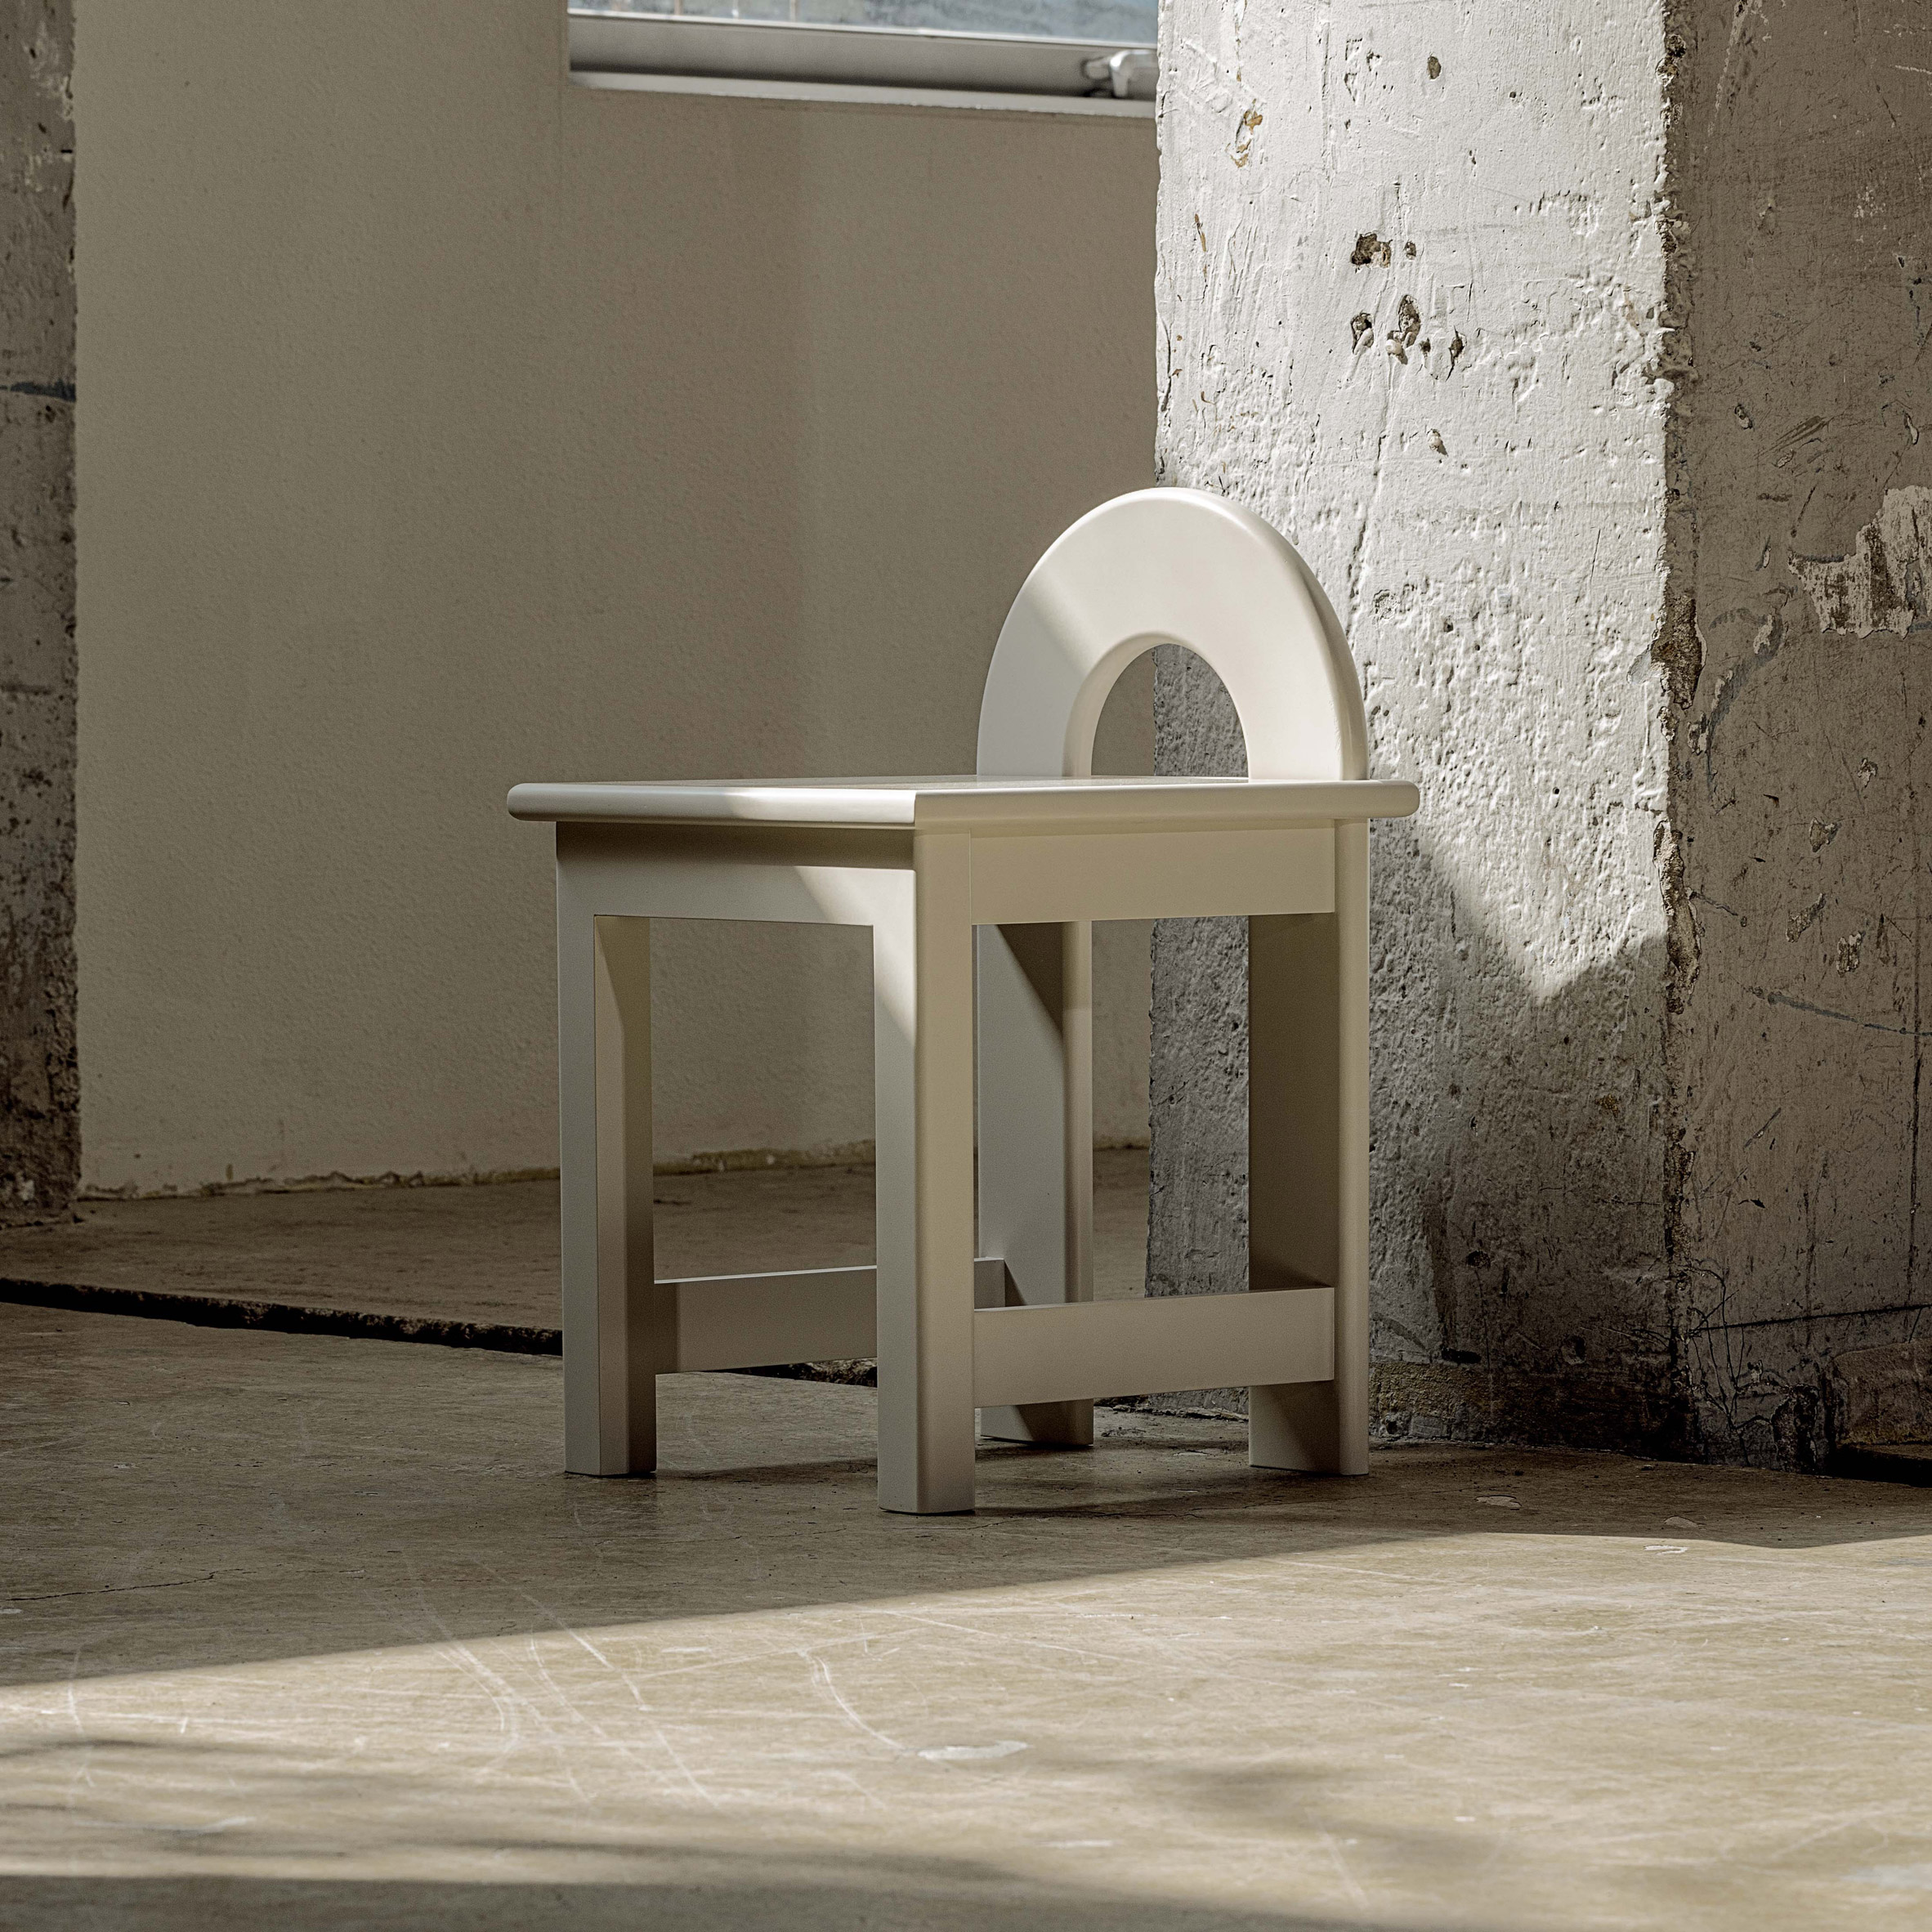 Low U Stool from Korean Art Deco collection by Subin Seoul